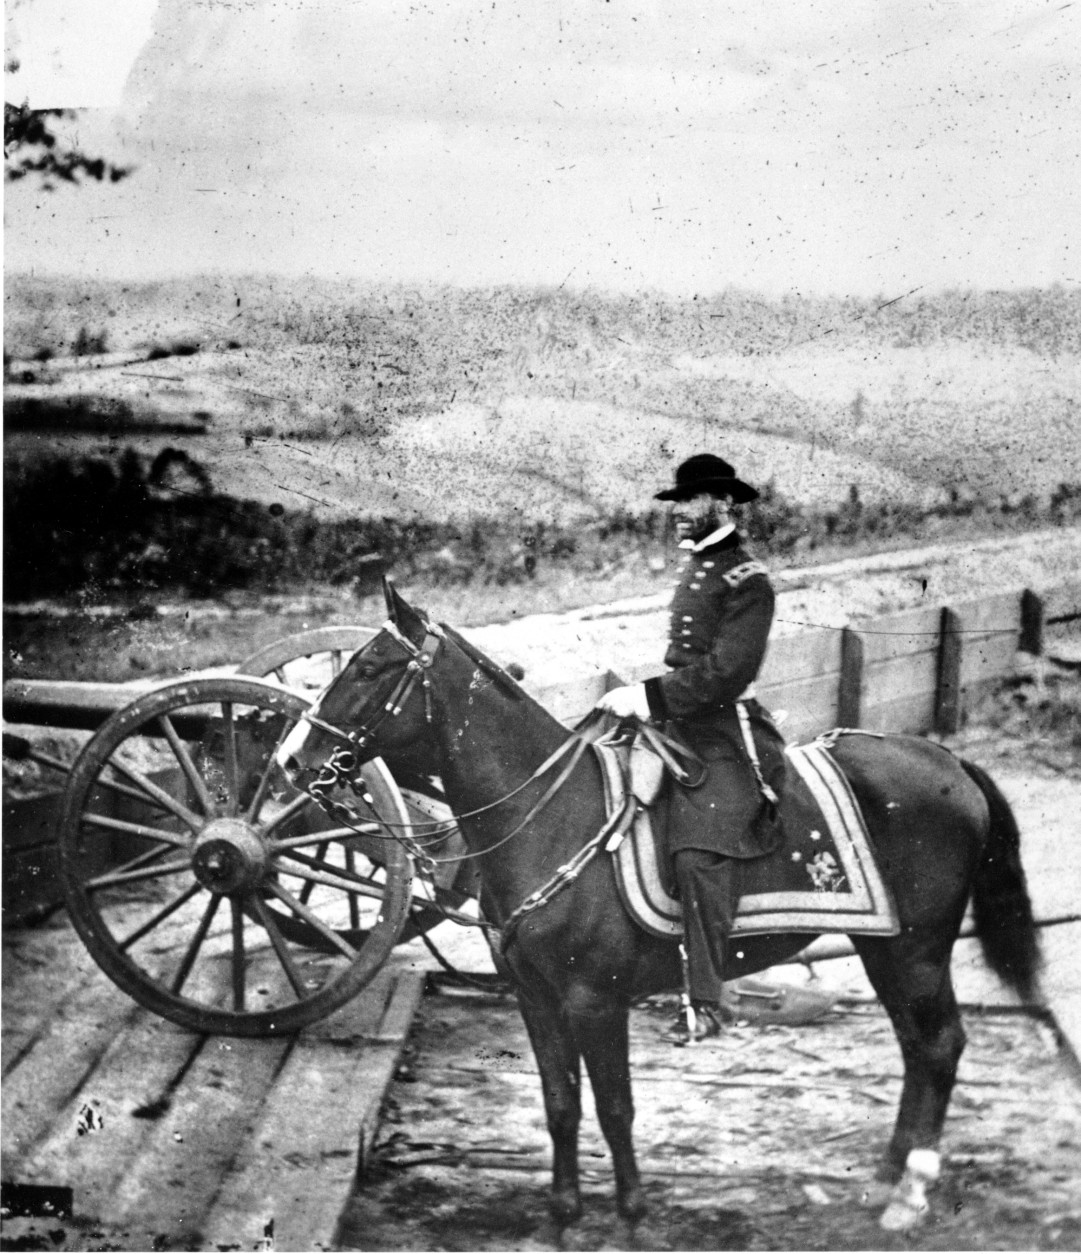 Gen. William T. Sherman inspects battlements at Atlanta in 1864 prior to his March to the Sea during the American Civil War. After his capture of Atlanta, Sherman went on to capture Savannah and divide the Confederate States of America. (AP Photo)